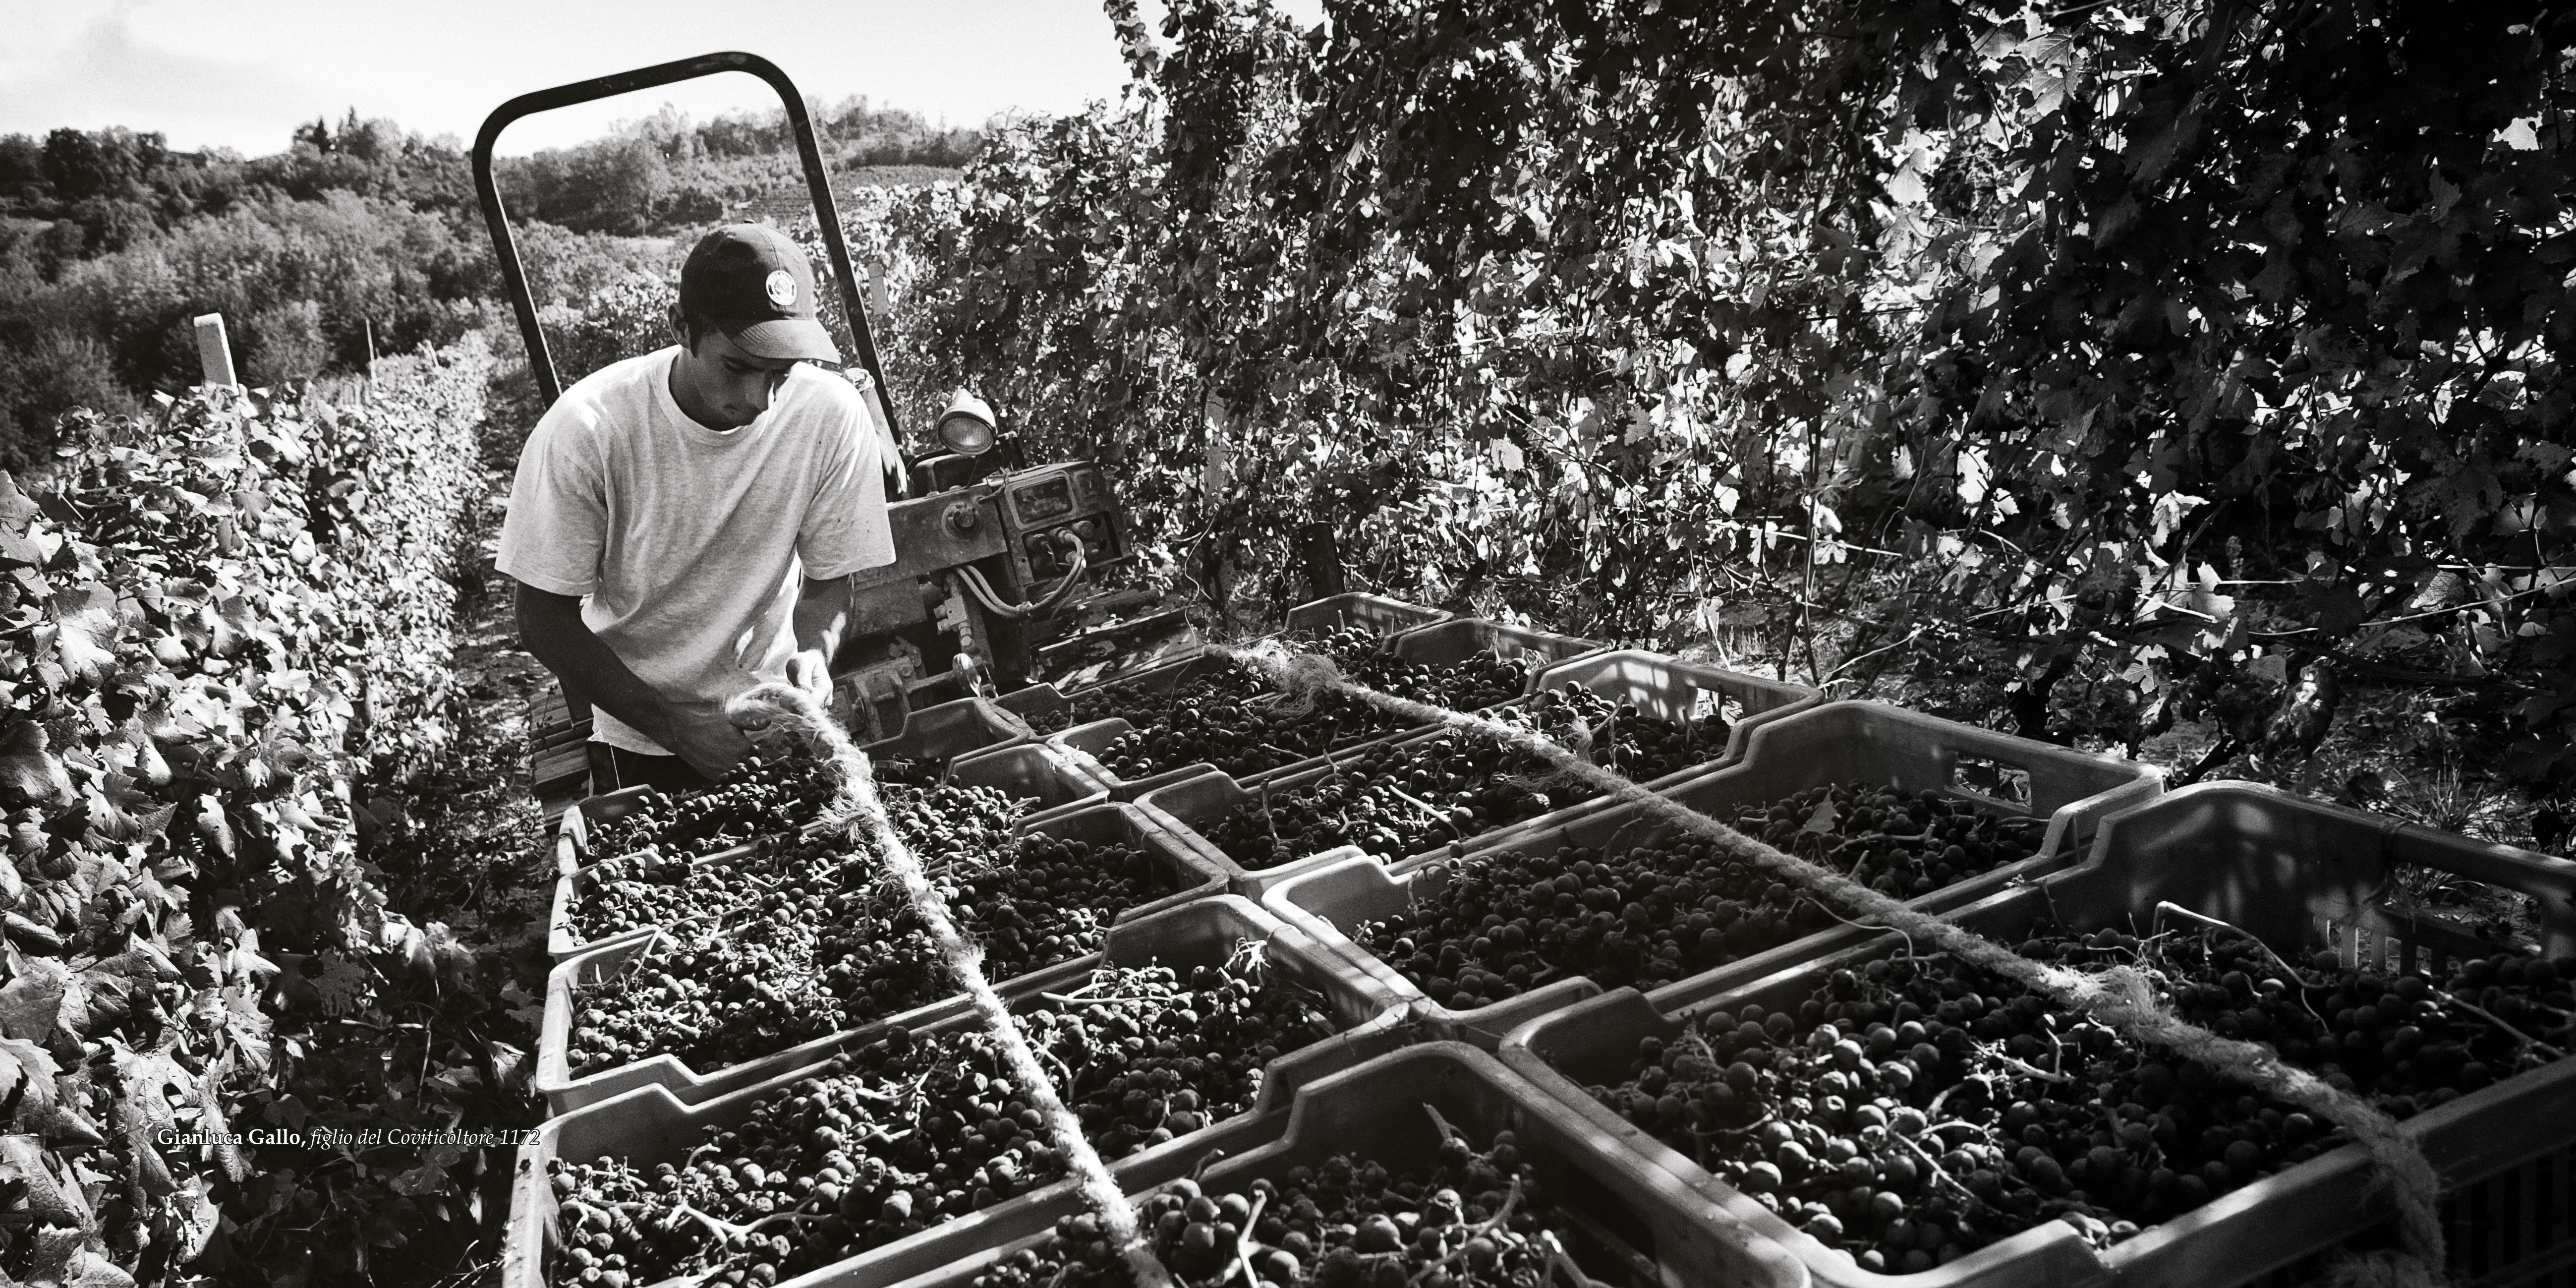 Working in Clavesana's vineyards. Photo compliments of Clavesana